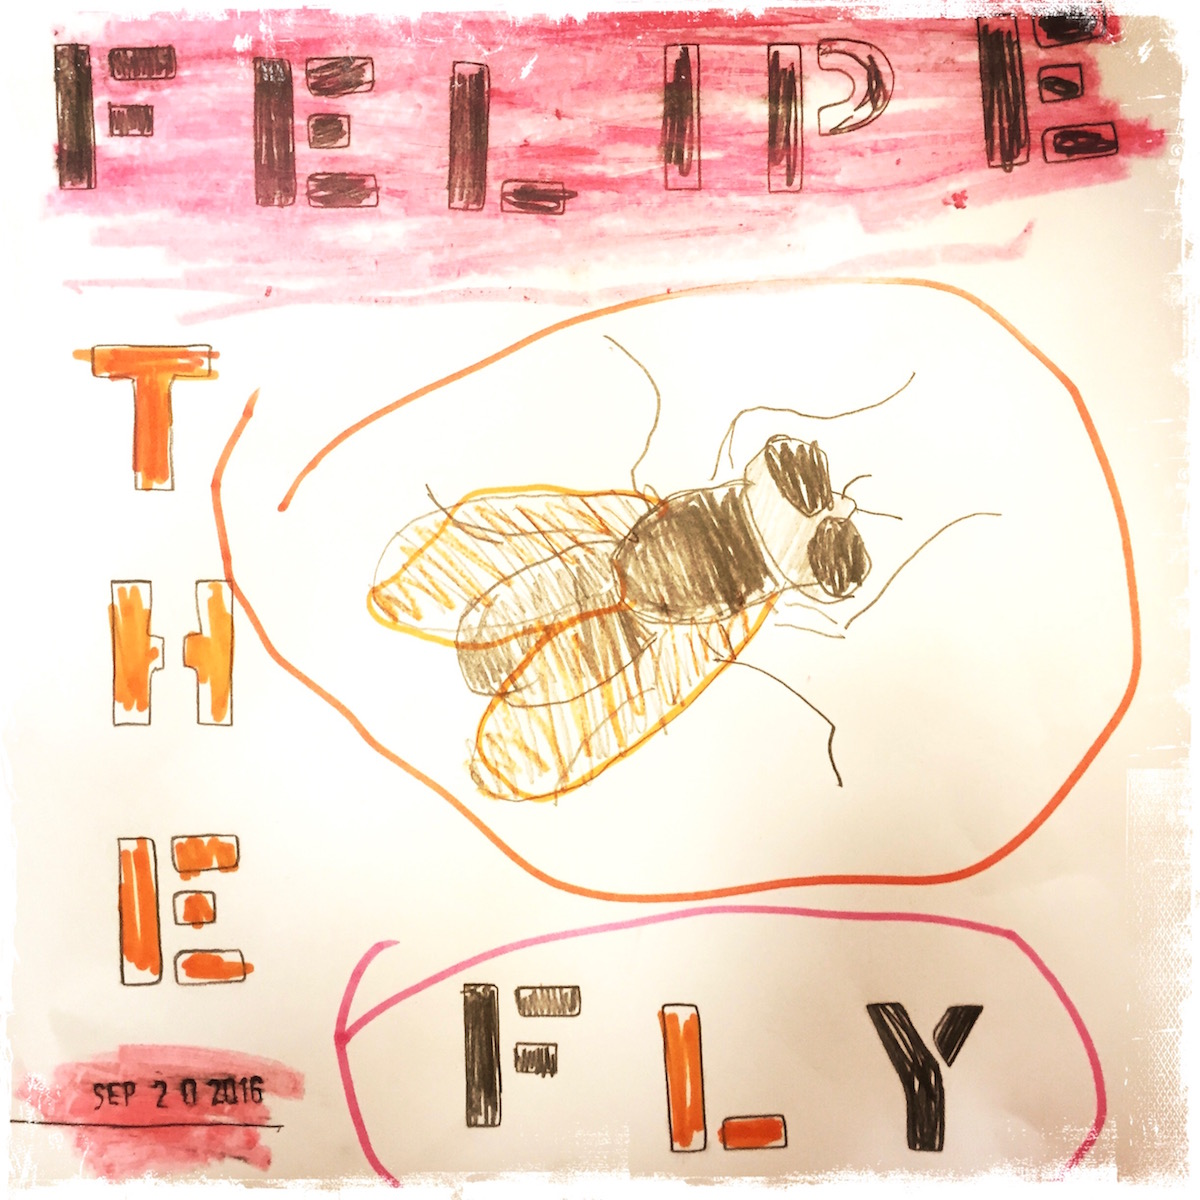 Felipe the Fly, fly sumbplosm, animal symbolism, poetry, Barbara Sinclair